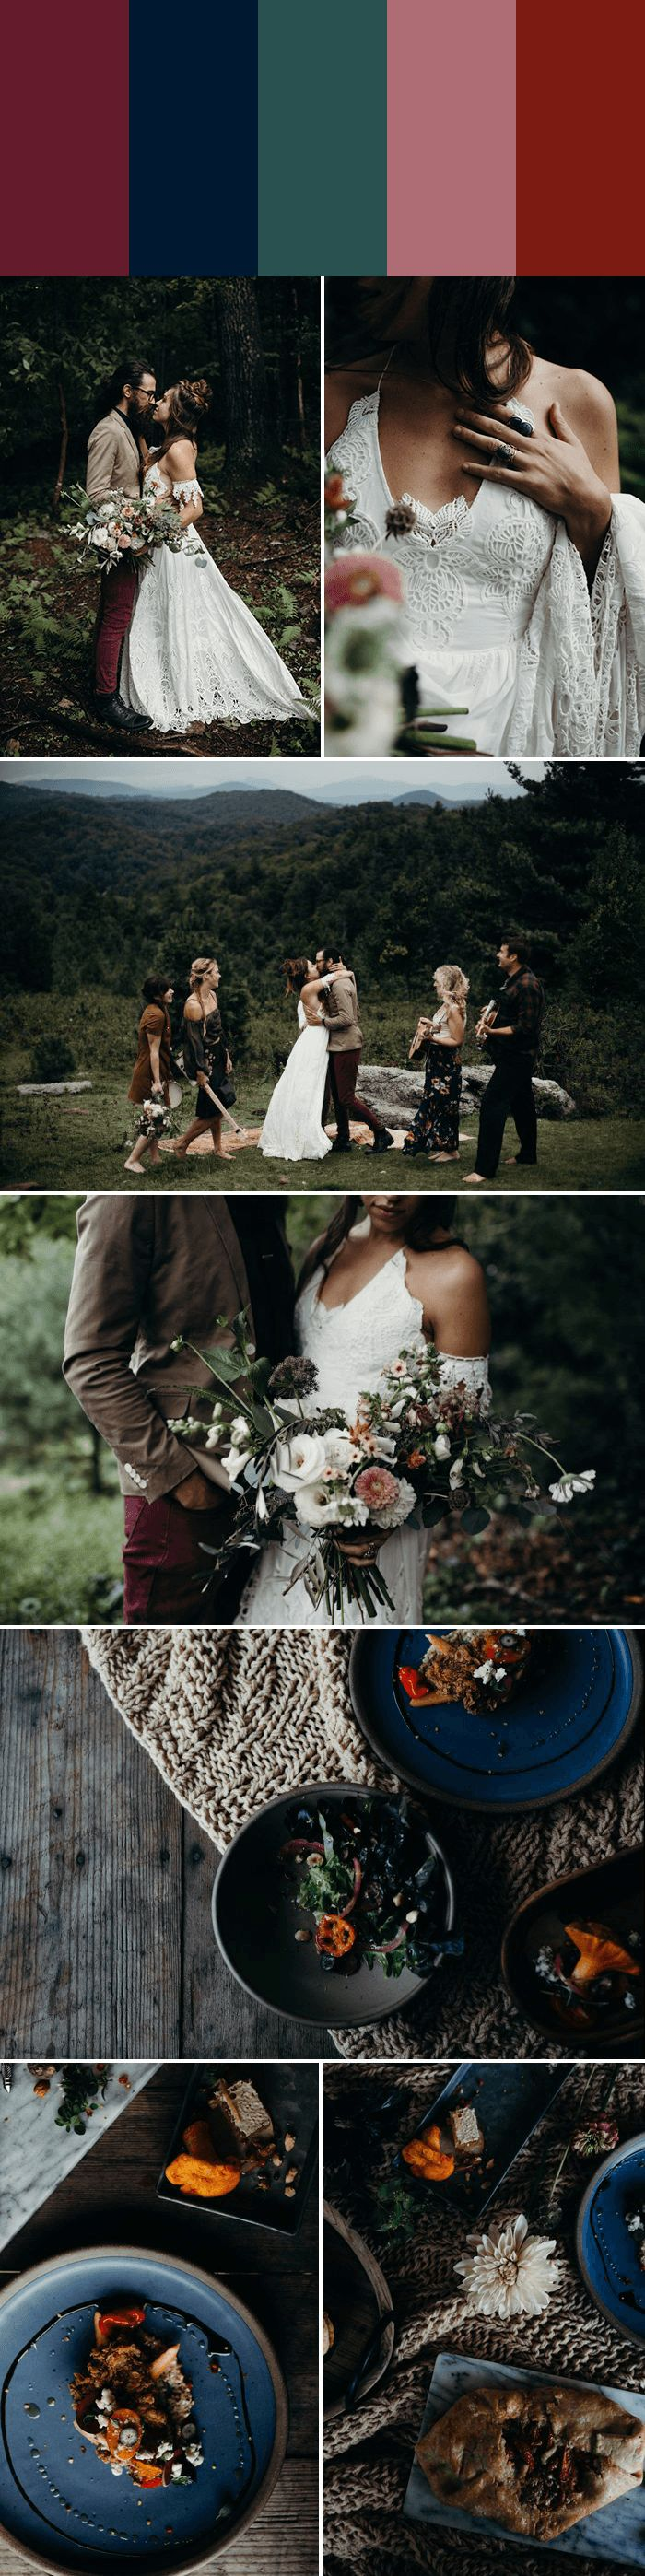 Merlot + Navy + Jade + Mauve + Scarlet for a dark and romantic boho wedding | Images by Michelle Lyerly